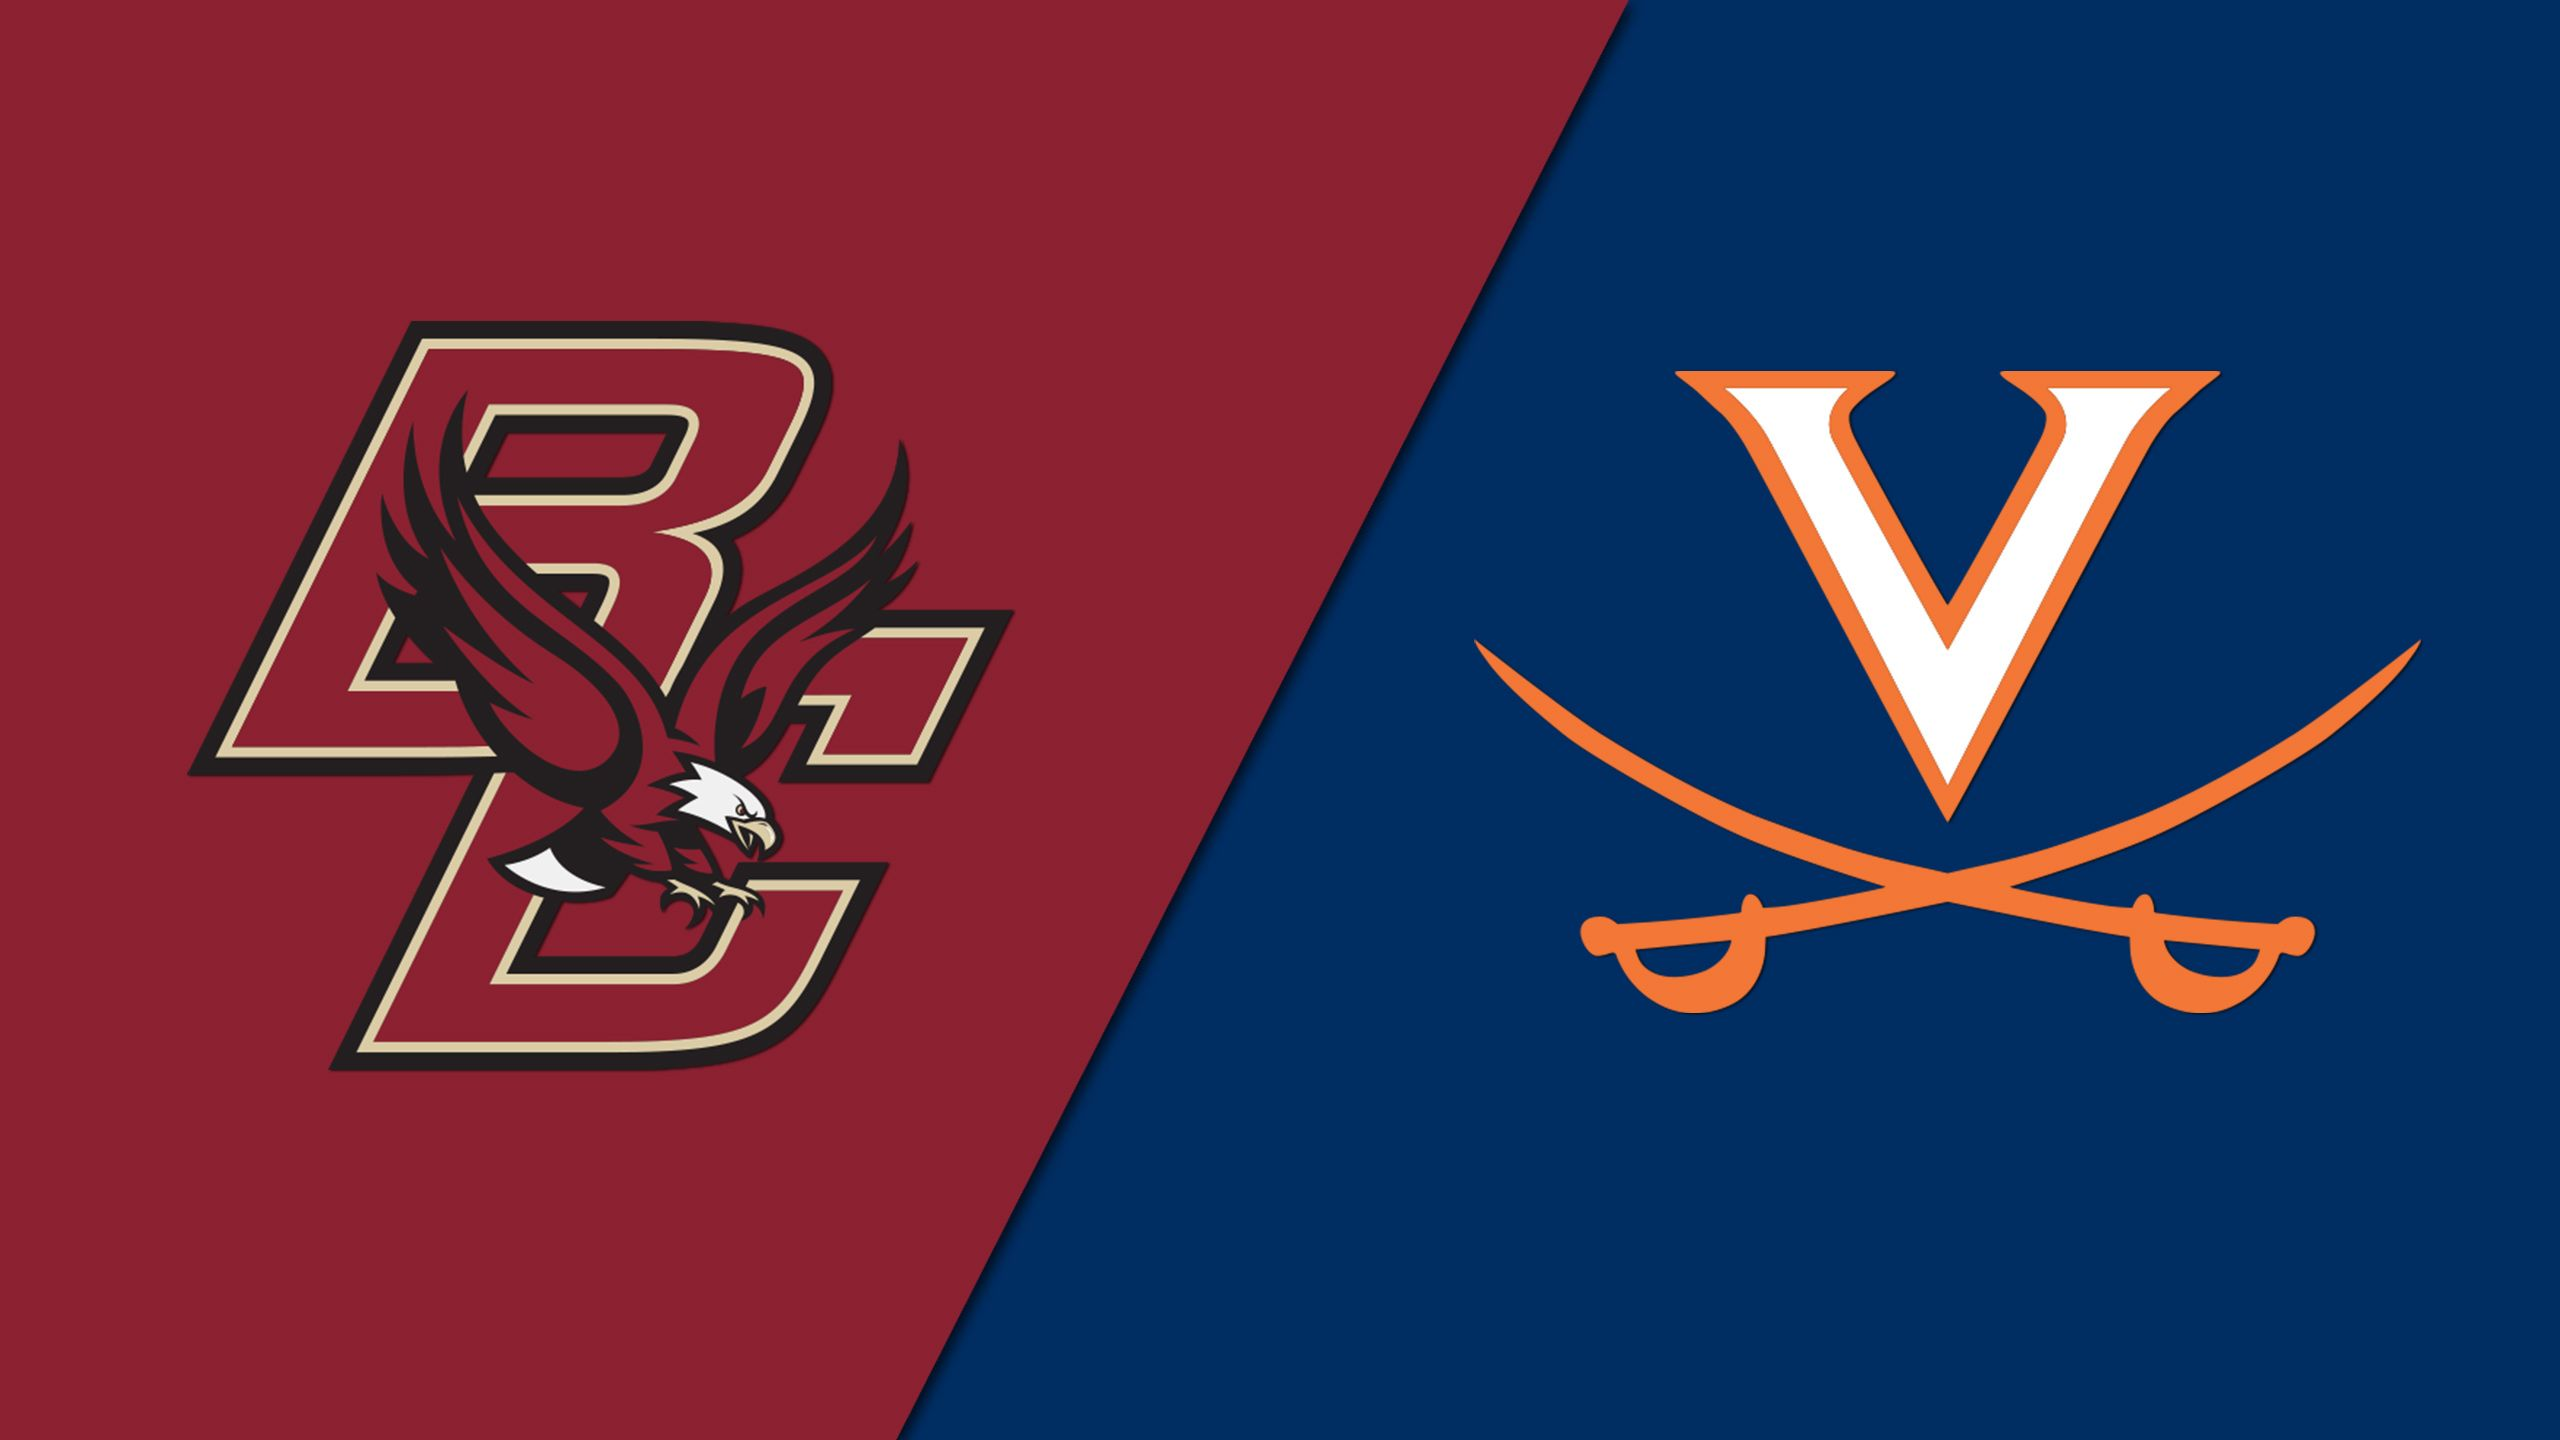 Boston College vs. #21 Virginia (Baseball)